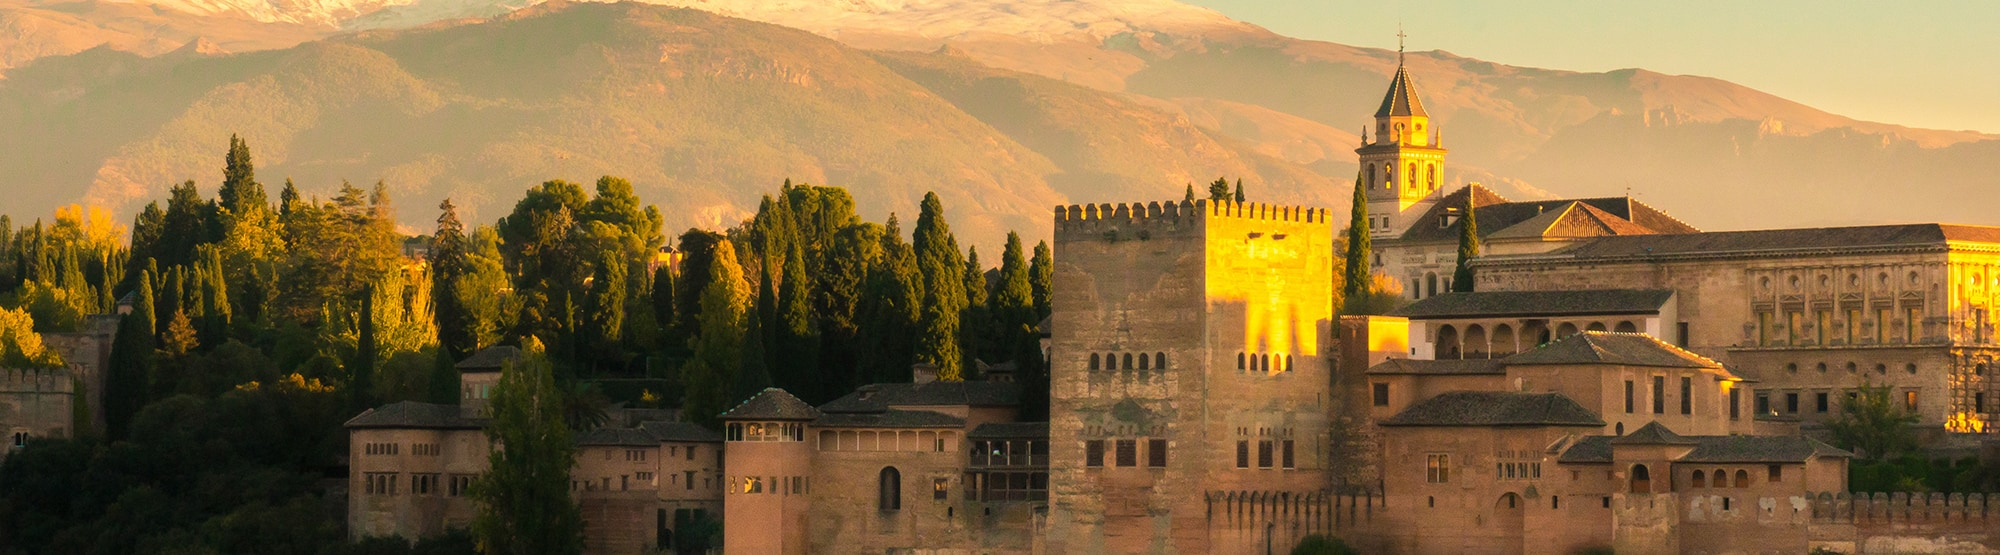 The Alhambra and Generalife